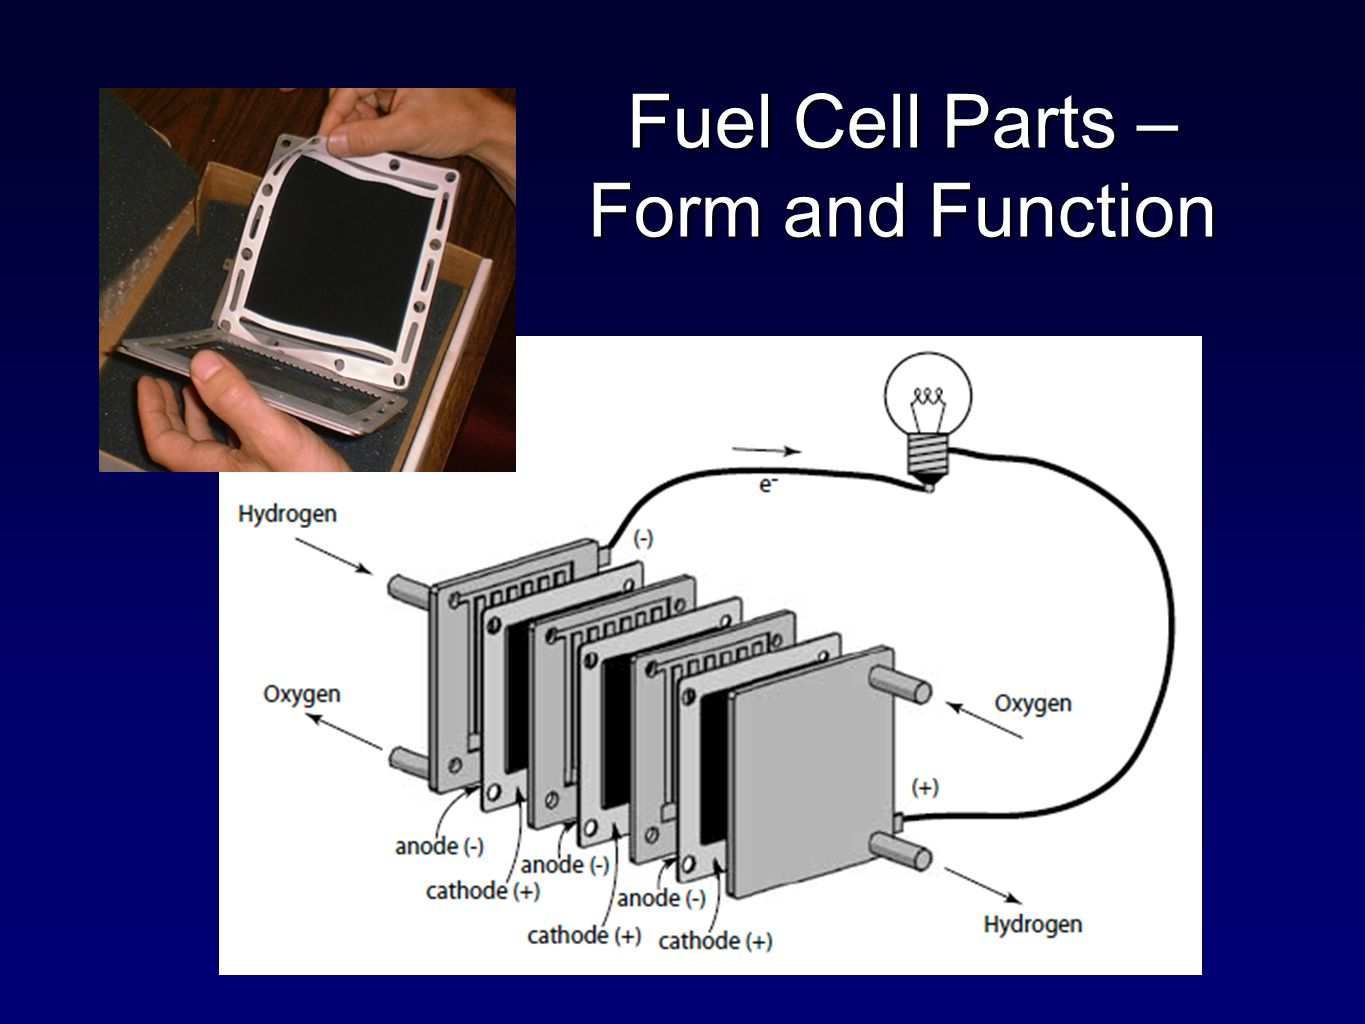 Fuel Cell Parts – Form and Function